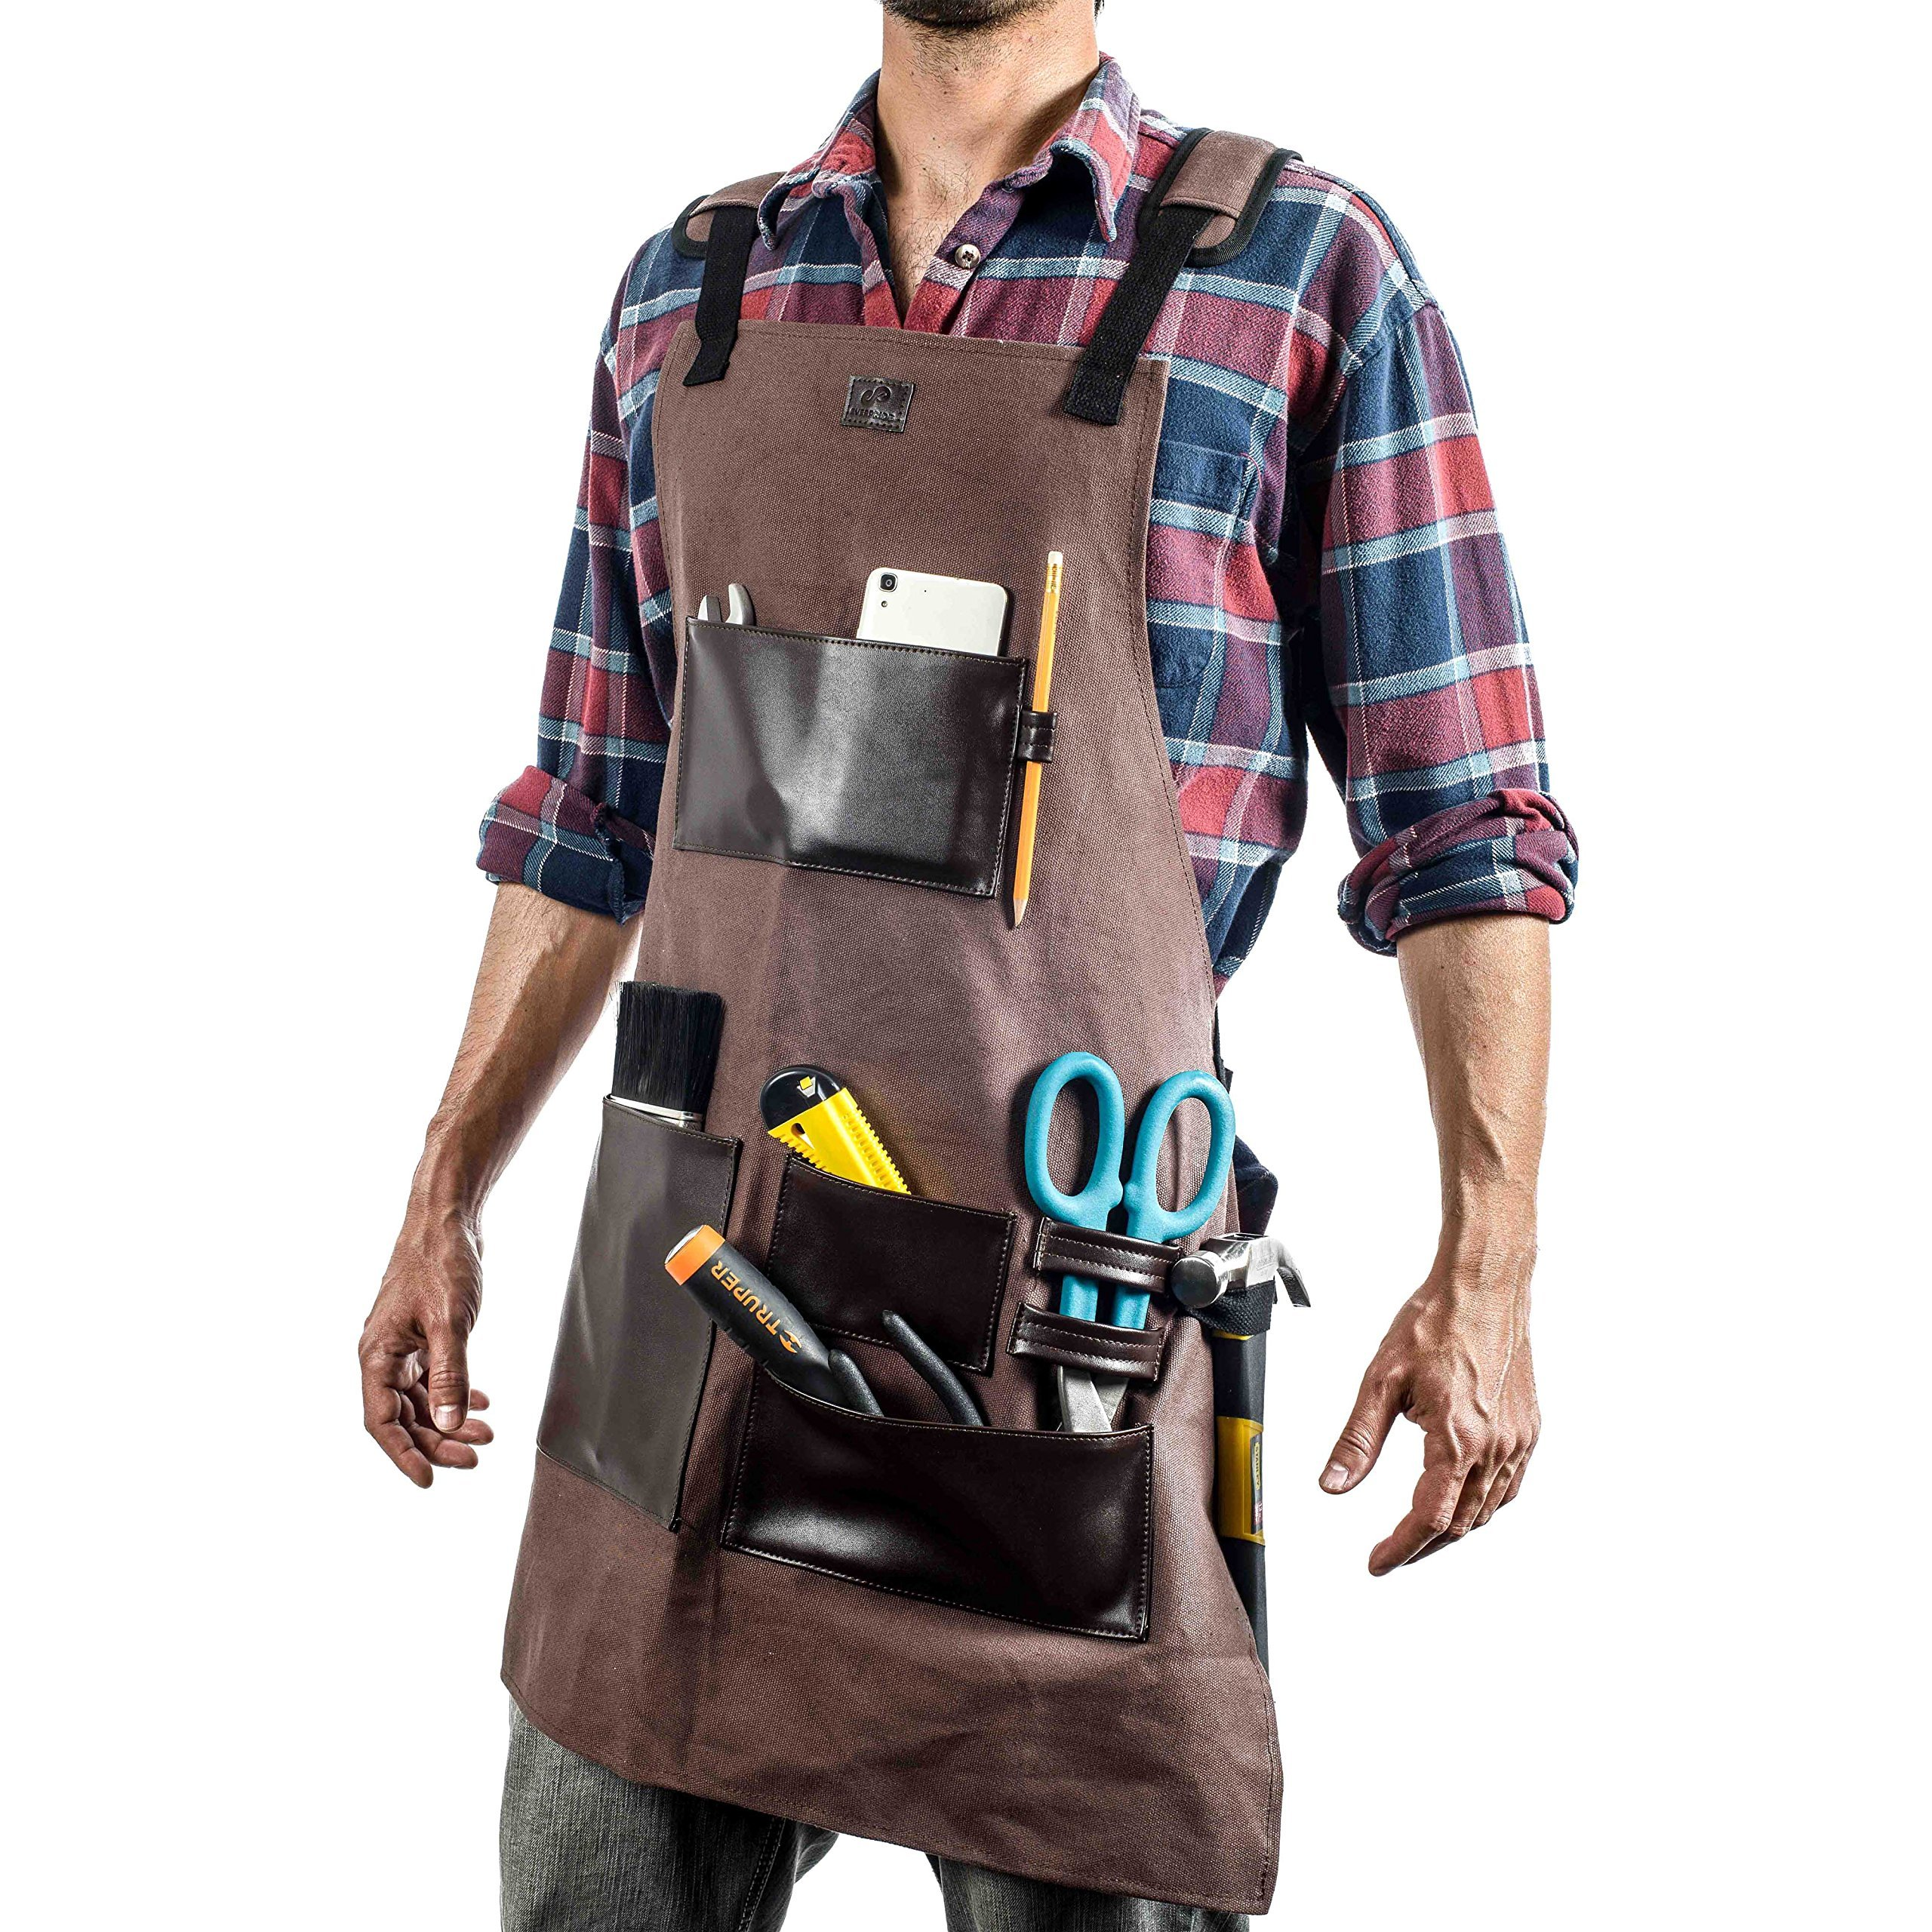 EVERPRIDE Waxed Canvas Tool Apron With Leather Pockets & Adjustable Straps | For Electricians, Carpenters, Chefs, BBQ, Bartenders, Plumbers, Butchers & More | Waterproof & Durable